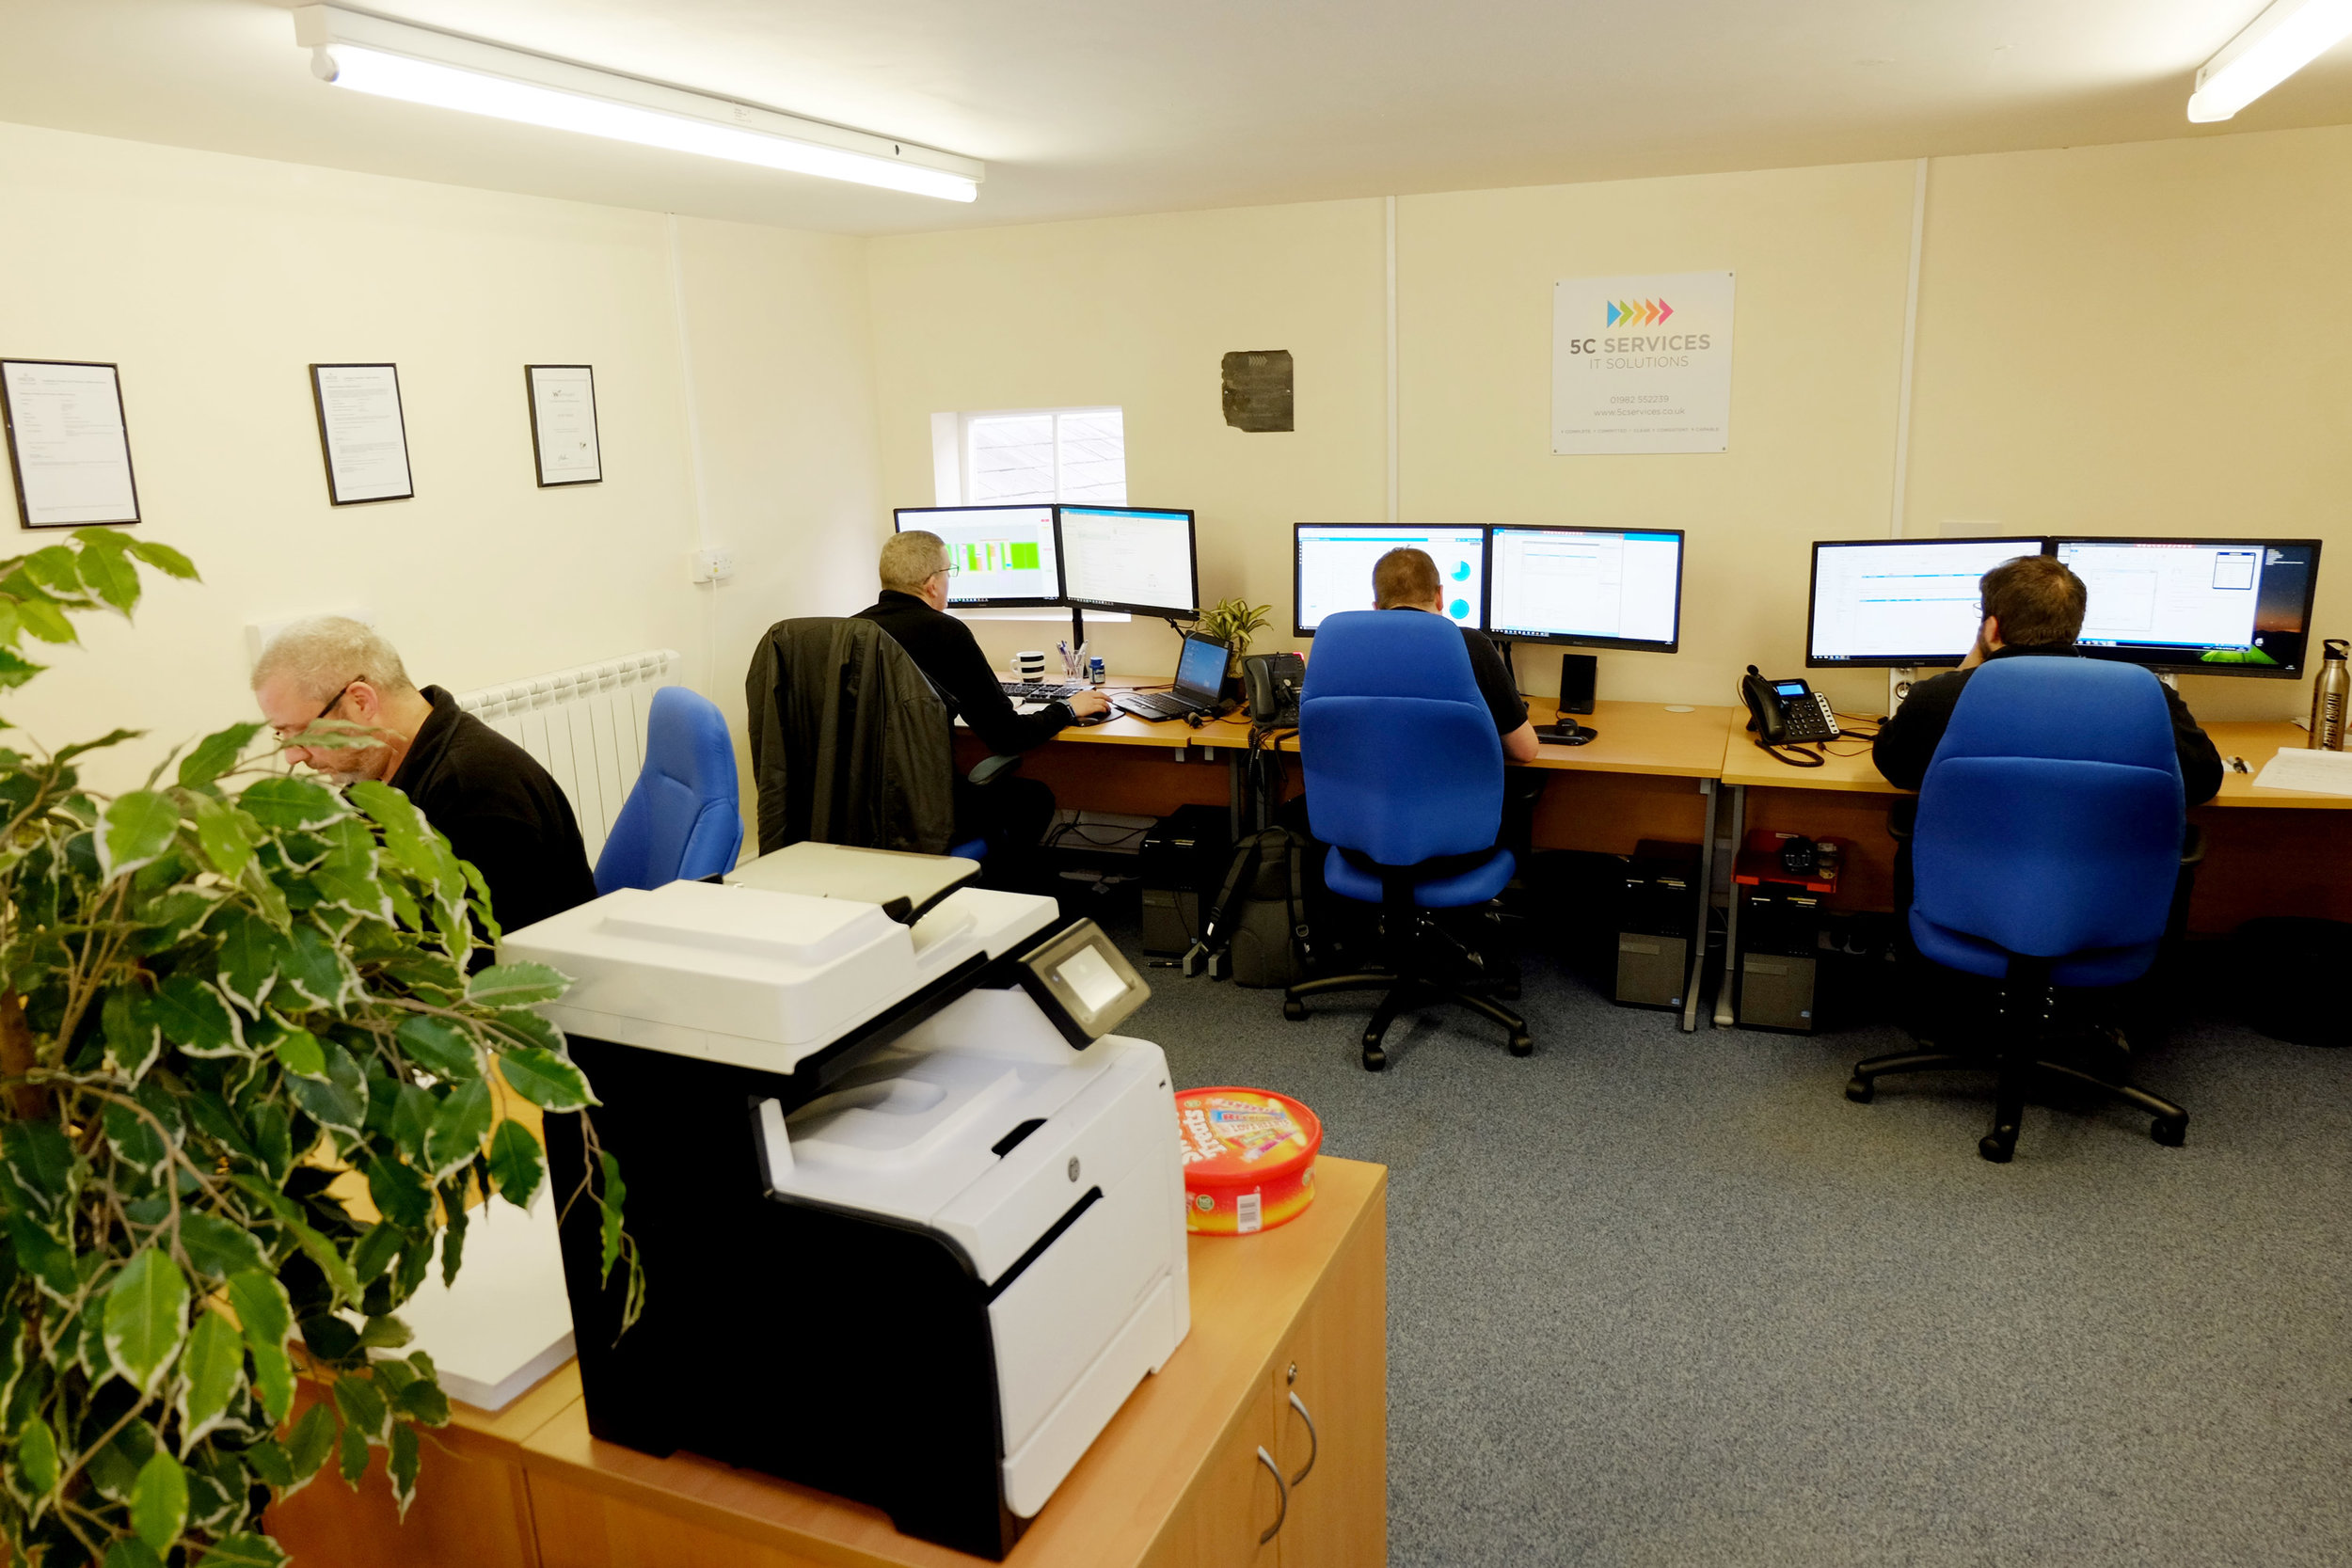 The new 5c Services office layout